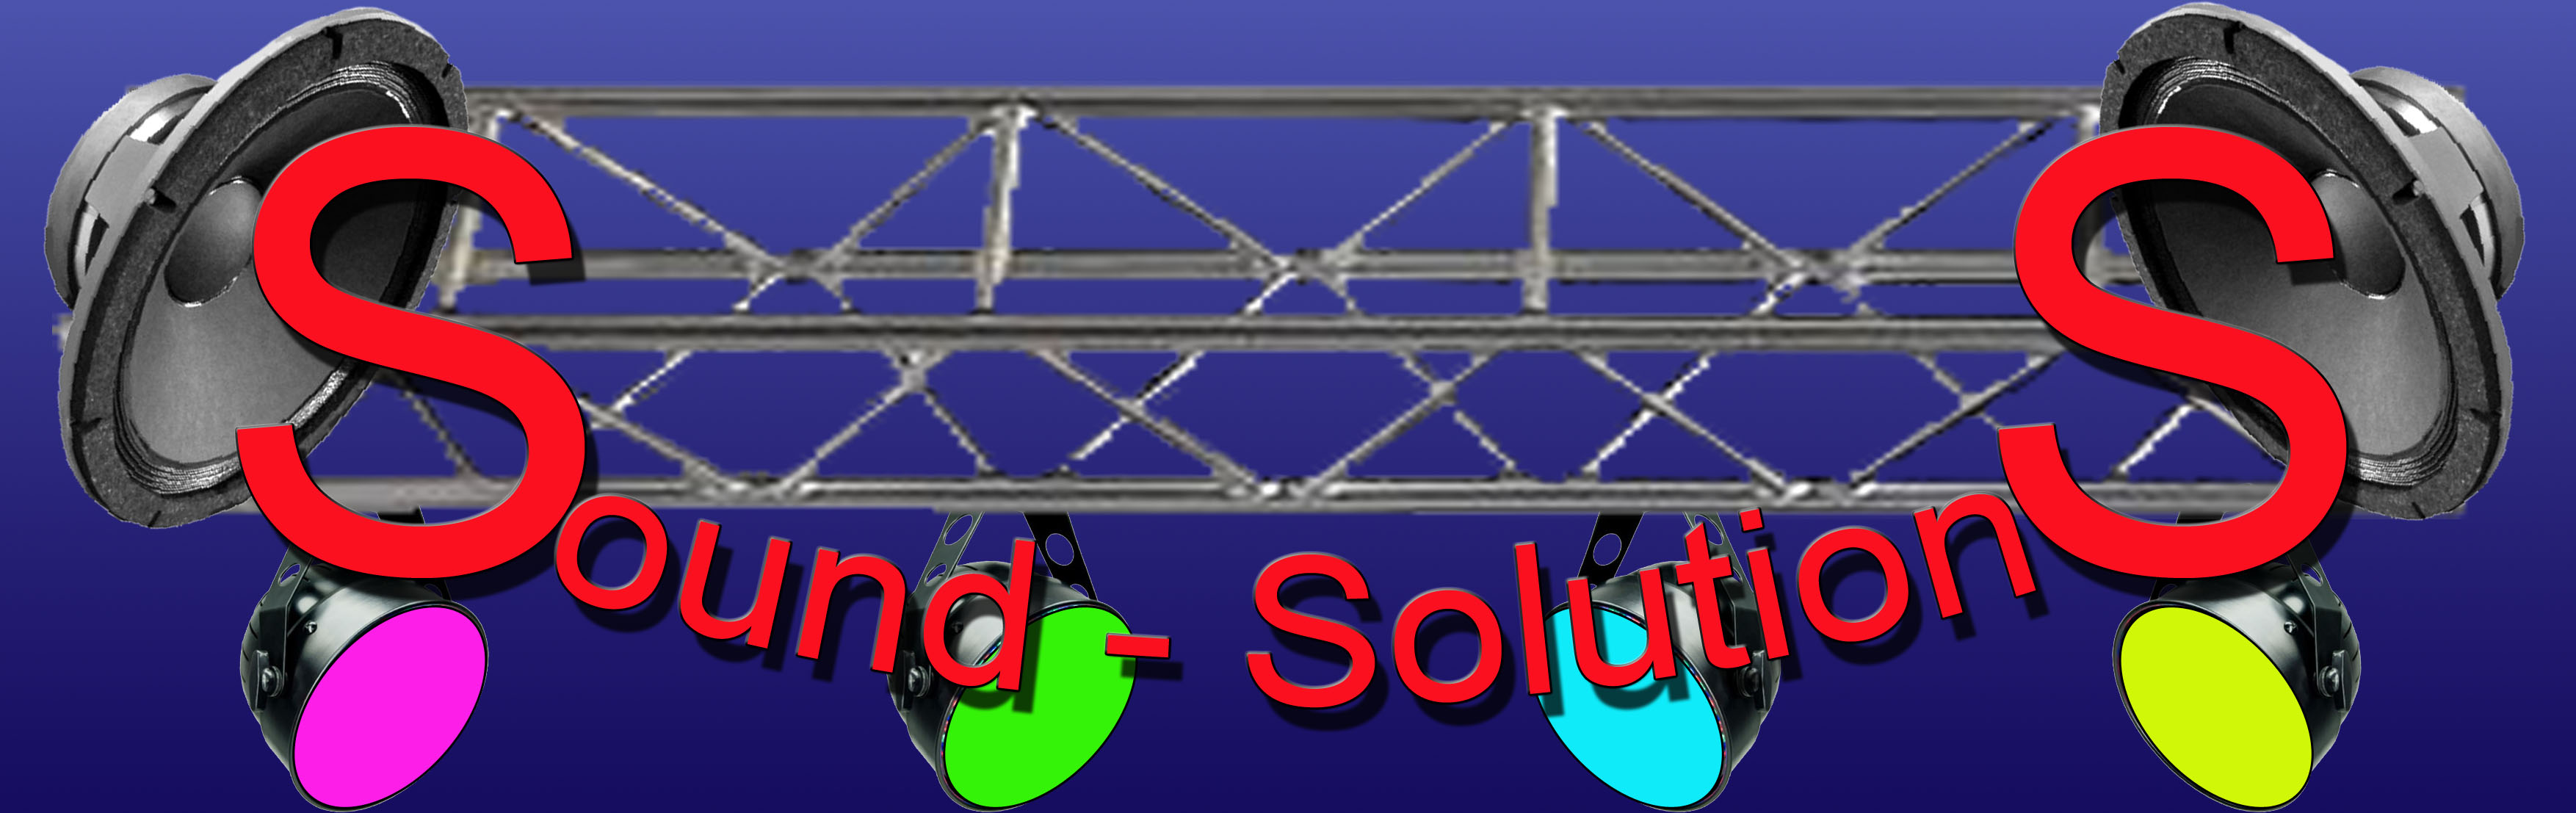 Logo Sound-solutions